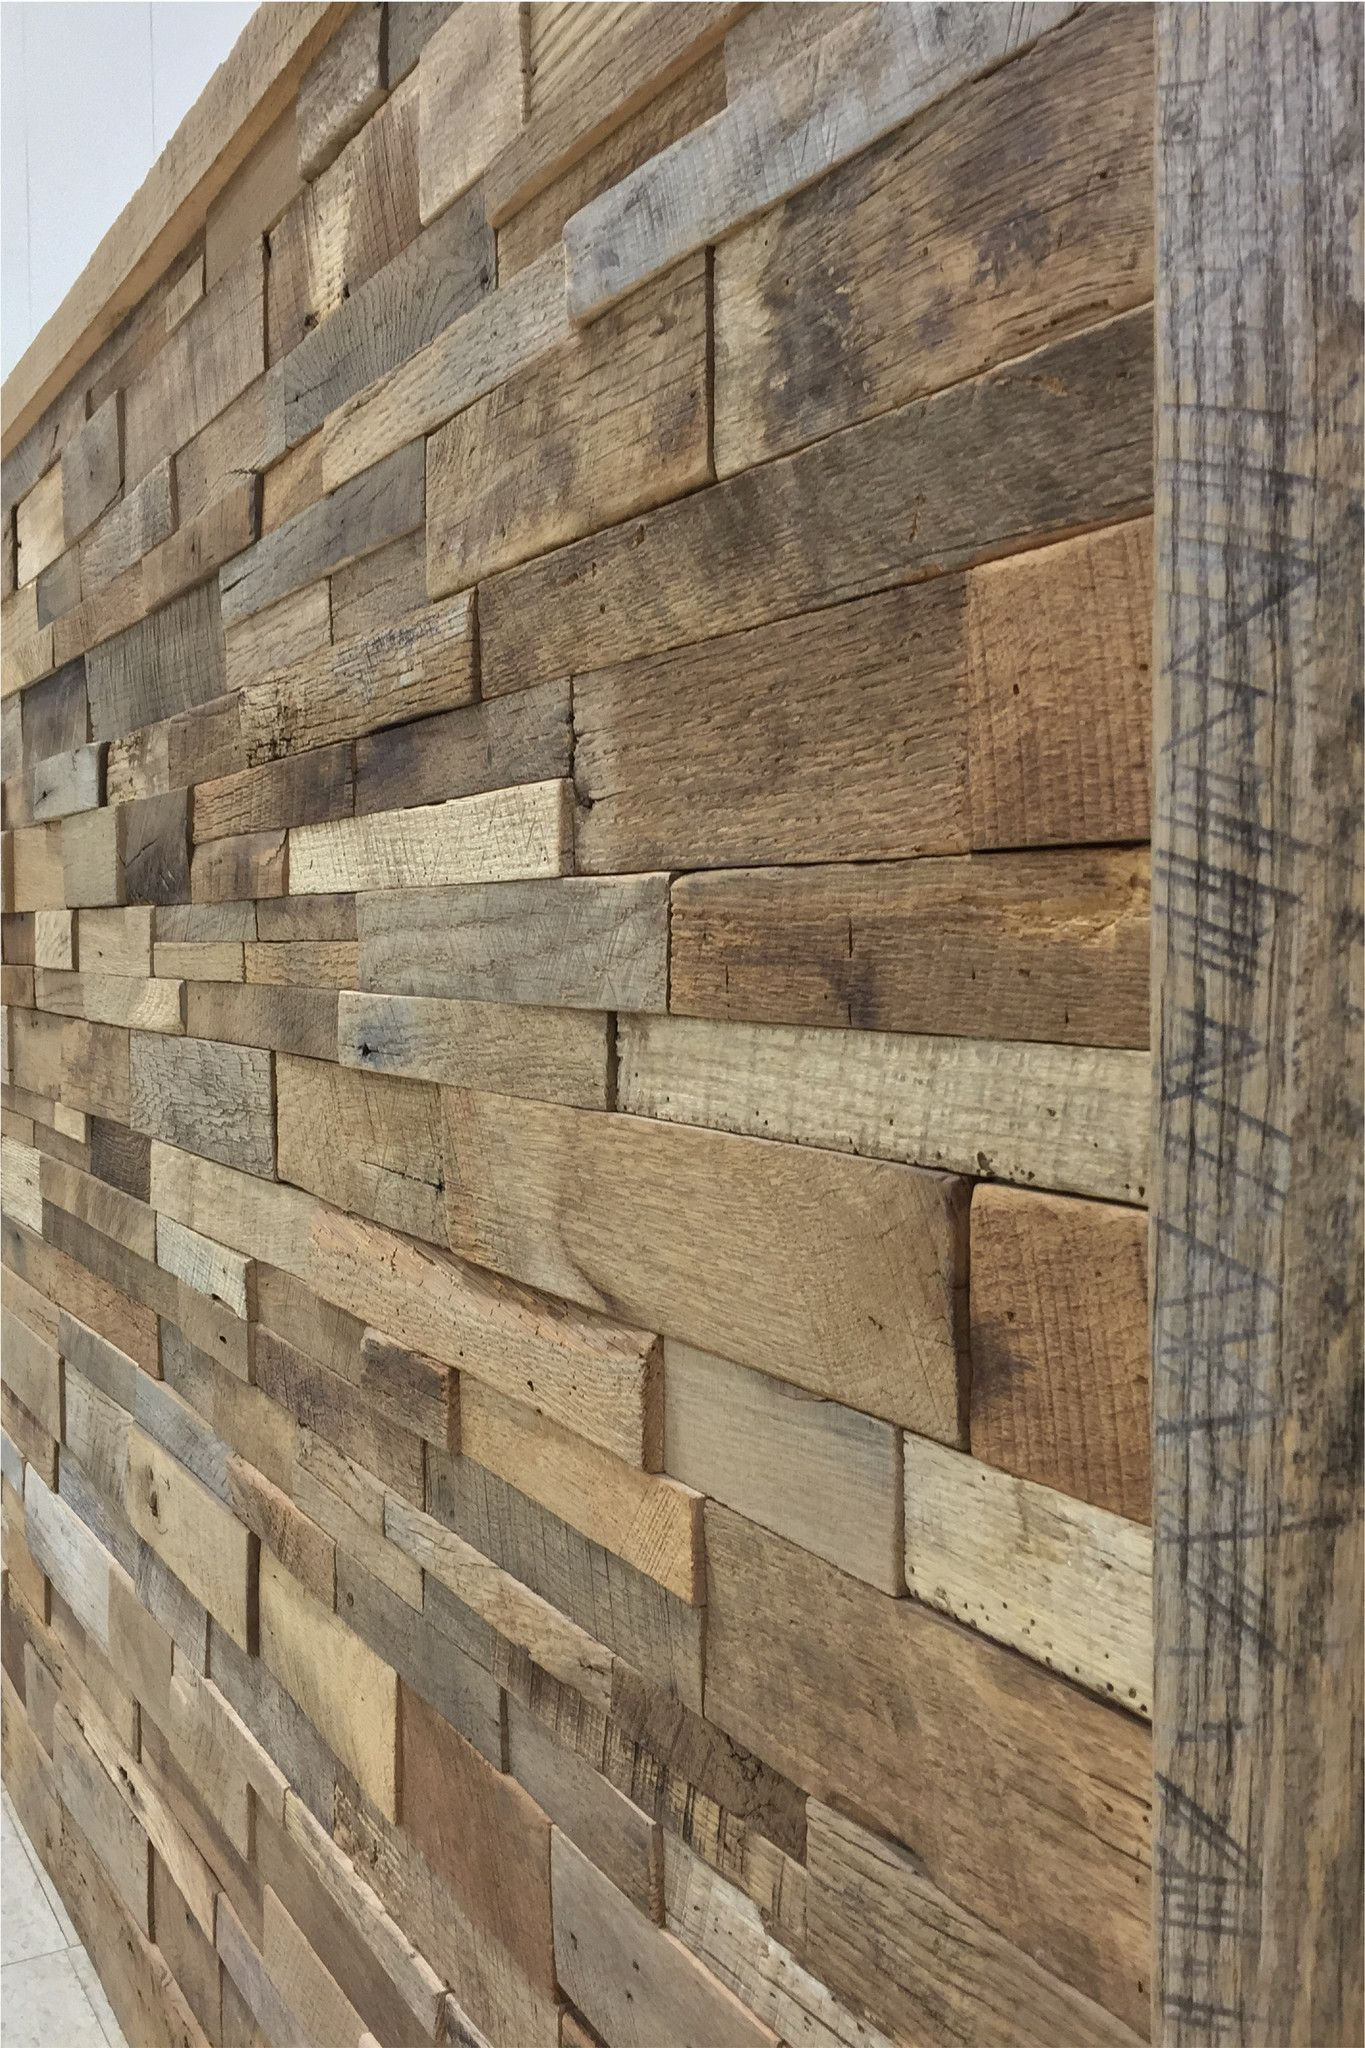 Authentic Reclaimed Barn Wood Stacked Wall Panels For Just 45 Per Panel Real American Pieces Into A Single Prefab Mosaic You Can